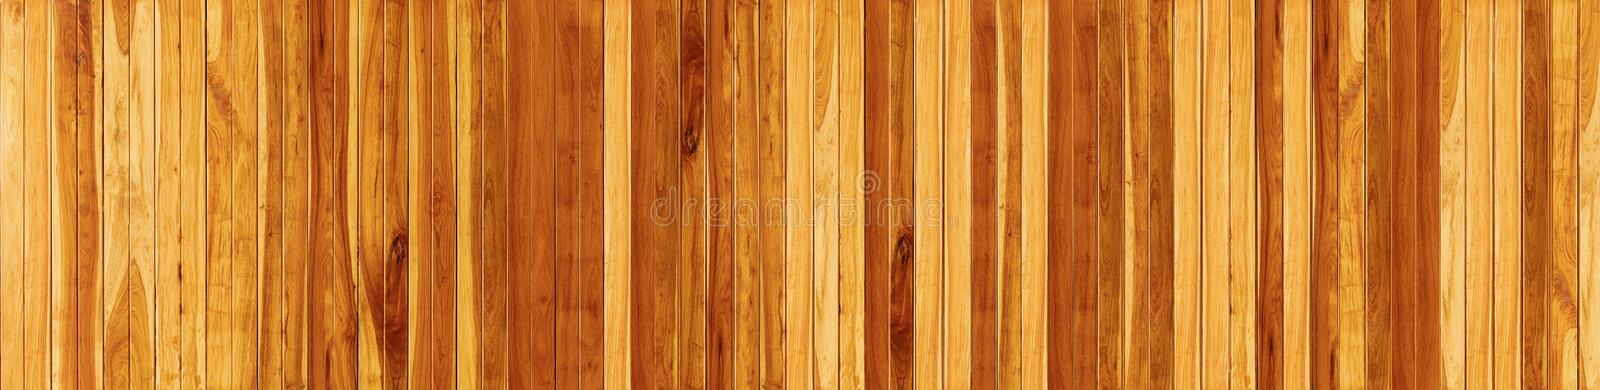 Panorama Wood floor texture background.  royalty free stock image